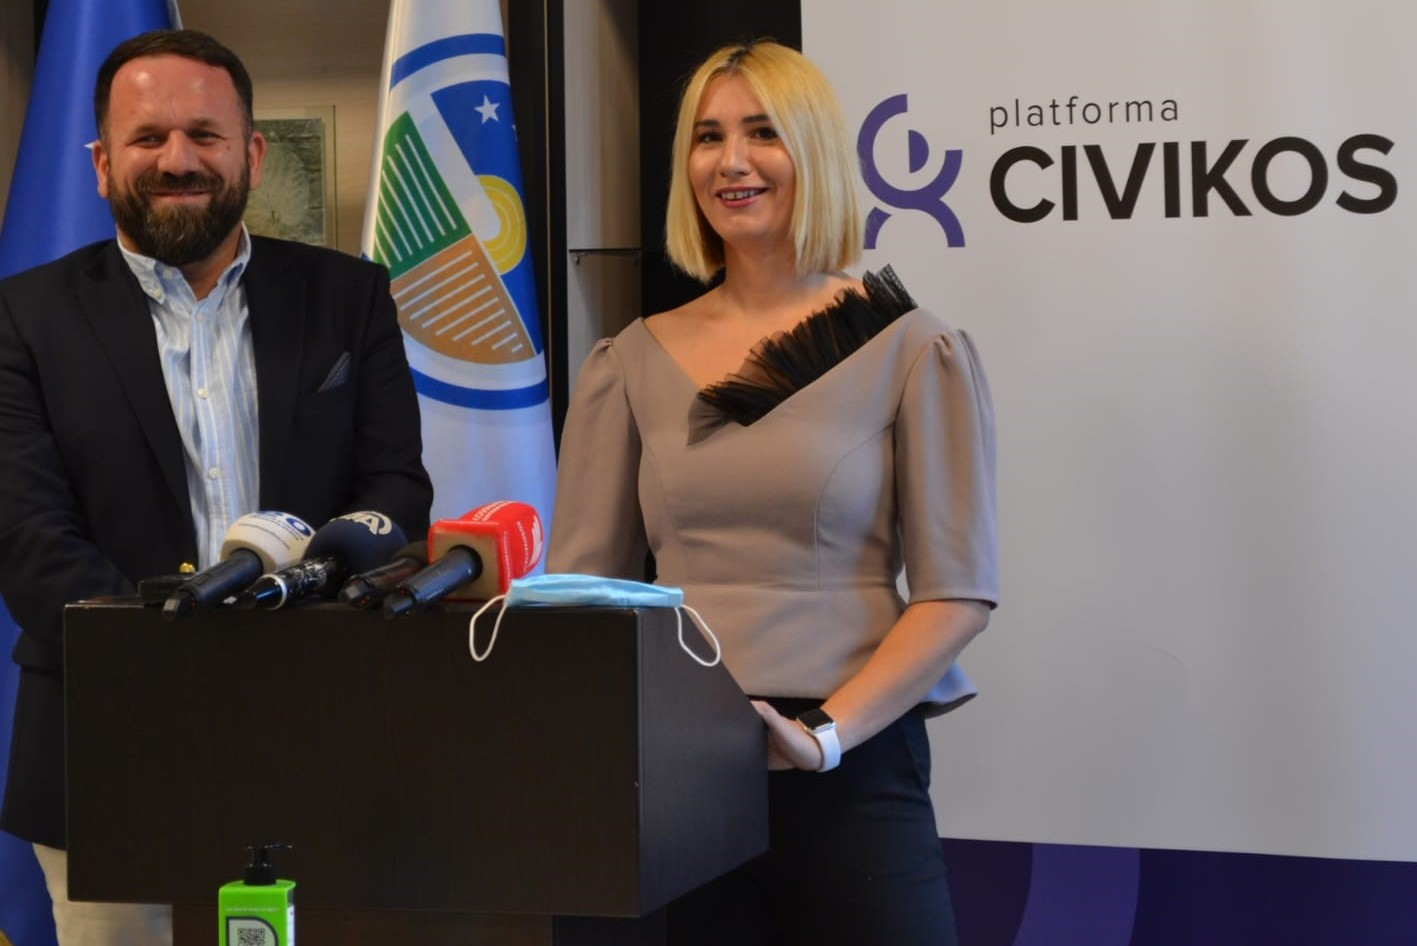 Kosovo Chamber of Commerce and Civikos Platform Share Their Joint Recommendations for Mass Vaccination